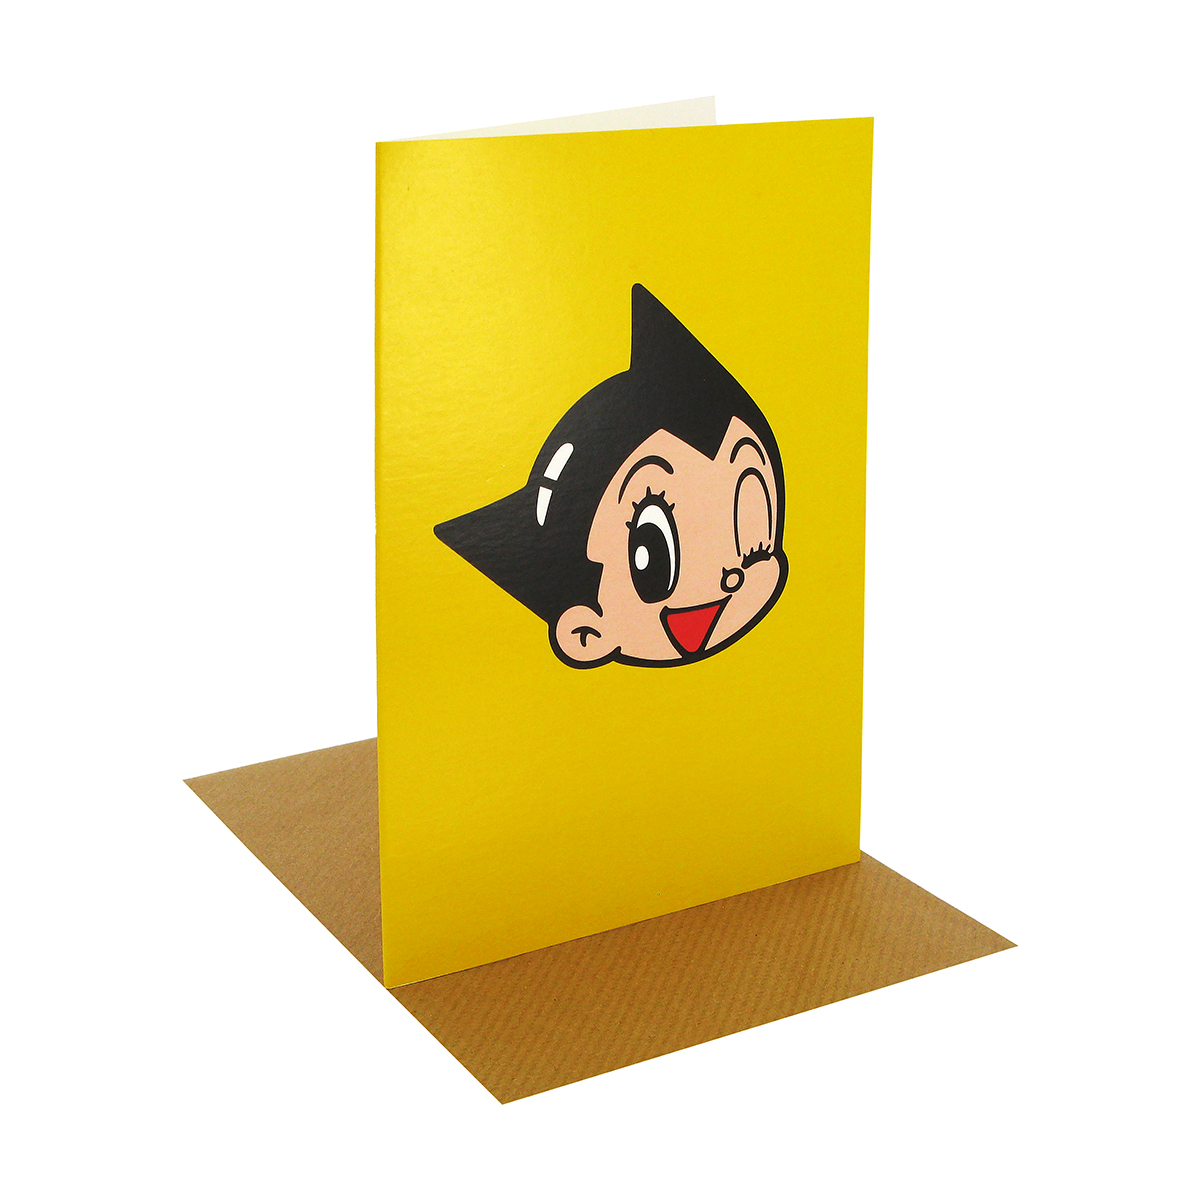 Astro boy greeting card (yellow)